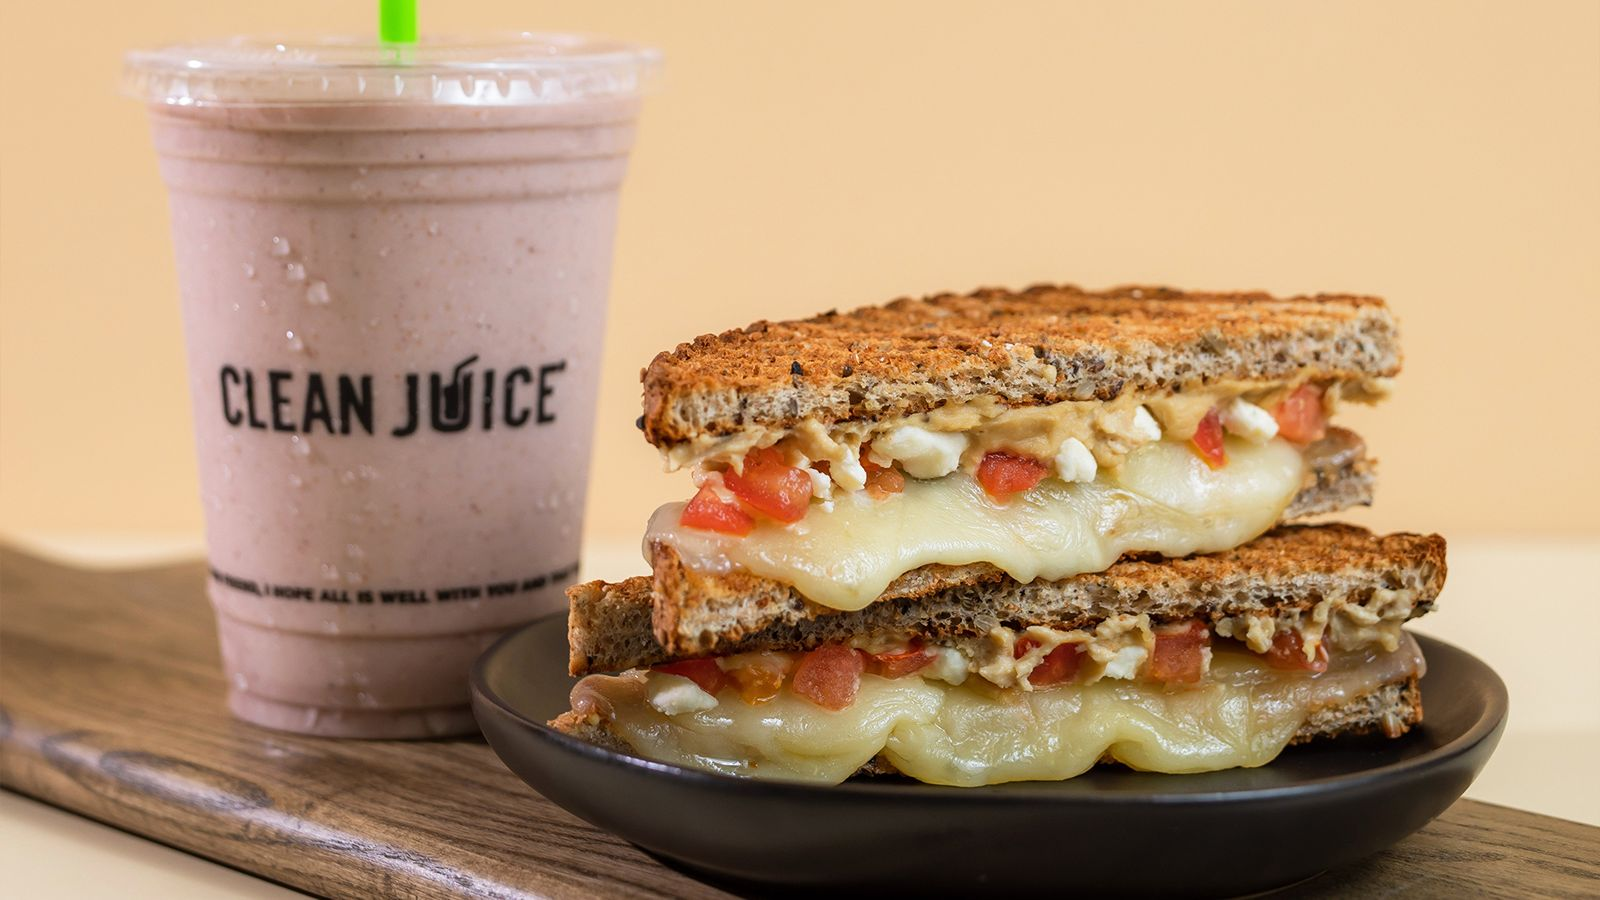 Clean Juice Introduces New Organic Sandwiches